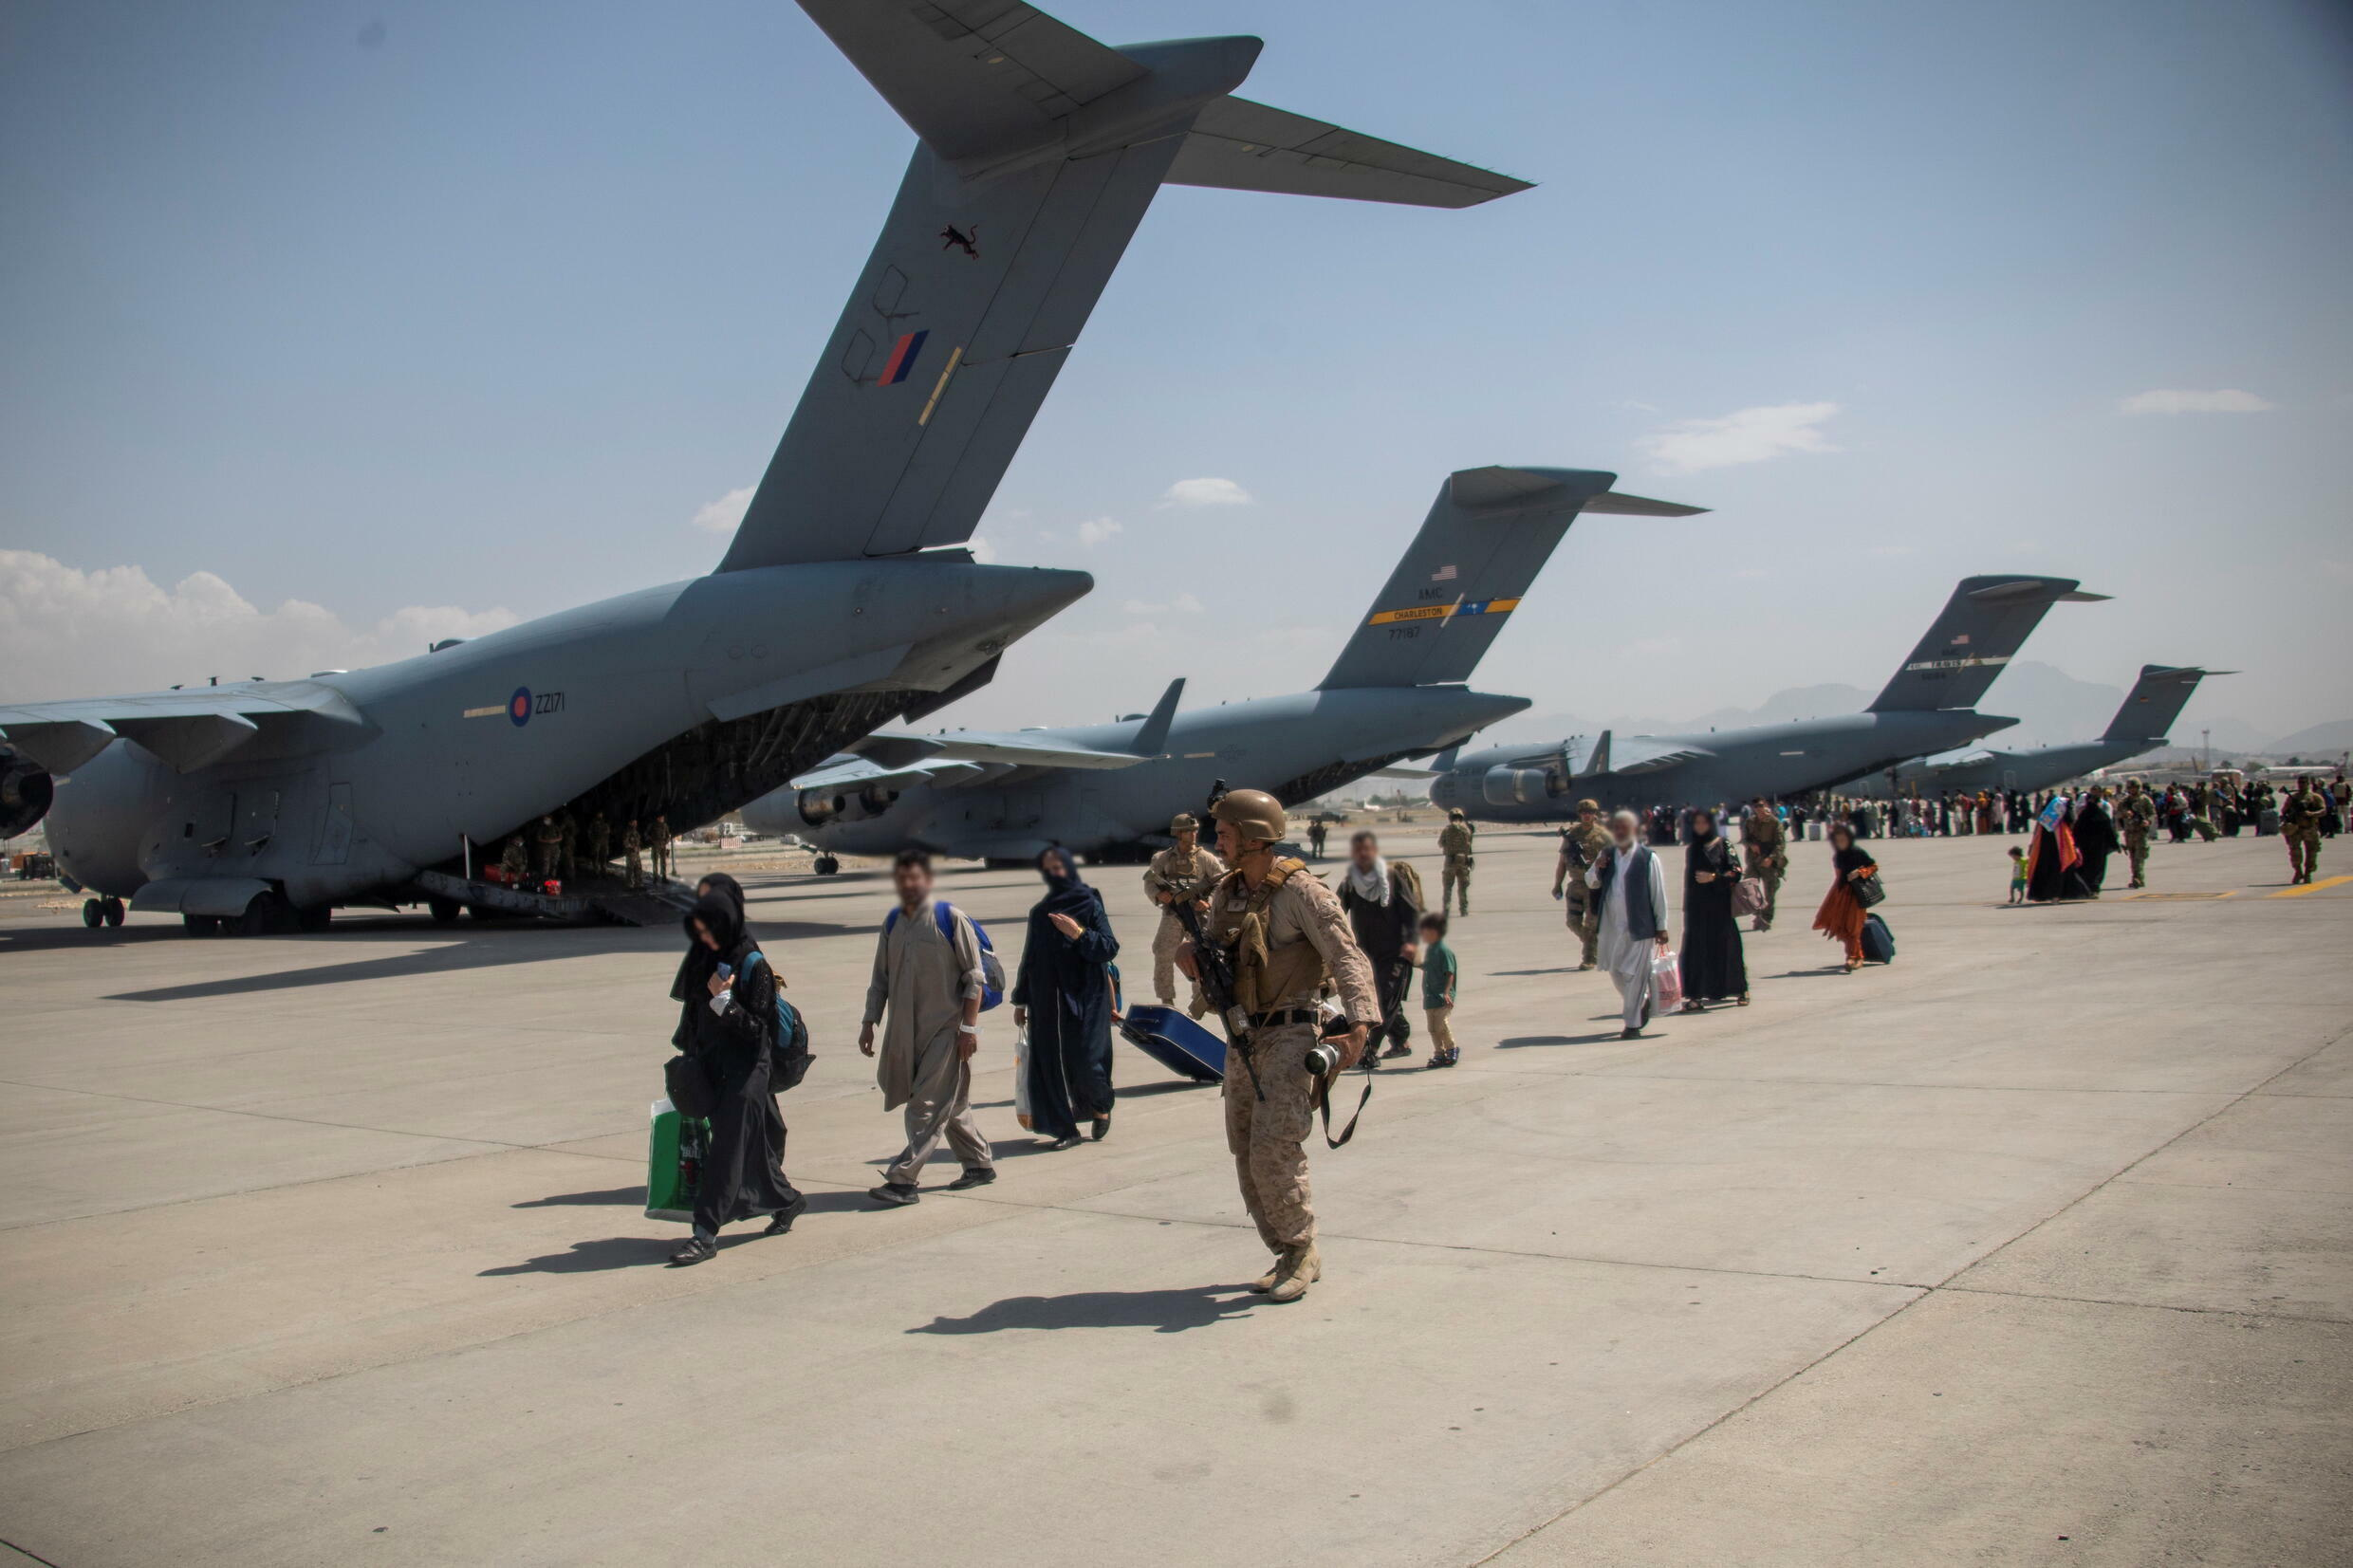 2021-08-23T154825Z_1456604436_RC2AAP9X7MUL_RTRMADP_3_AFGHANISTAN-CONFLICT-BRITAIN